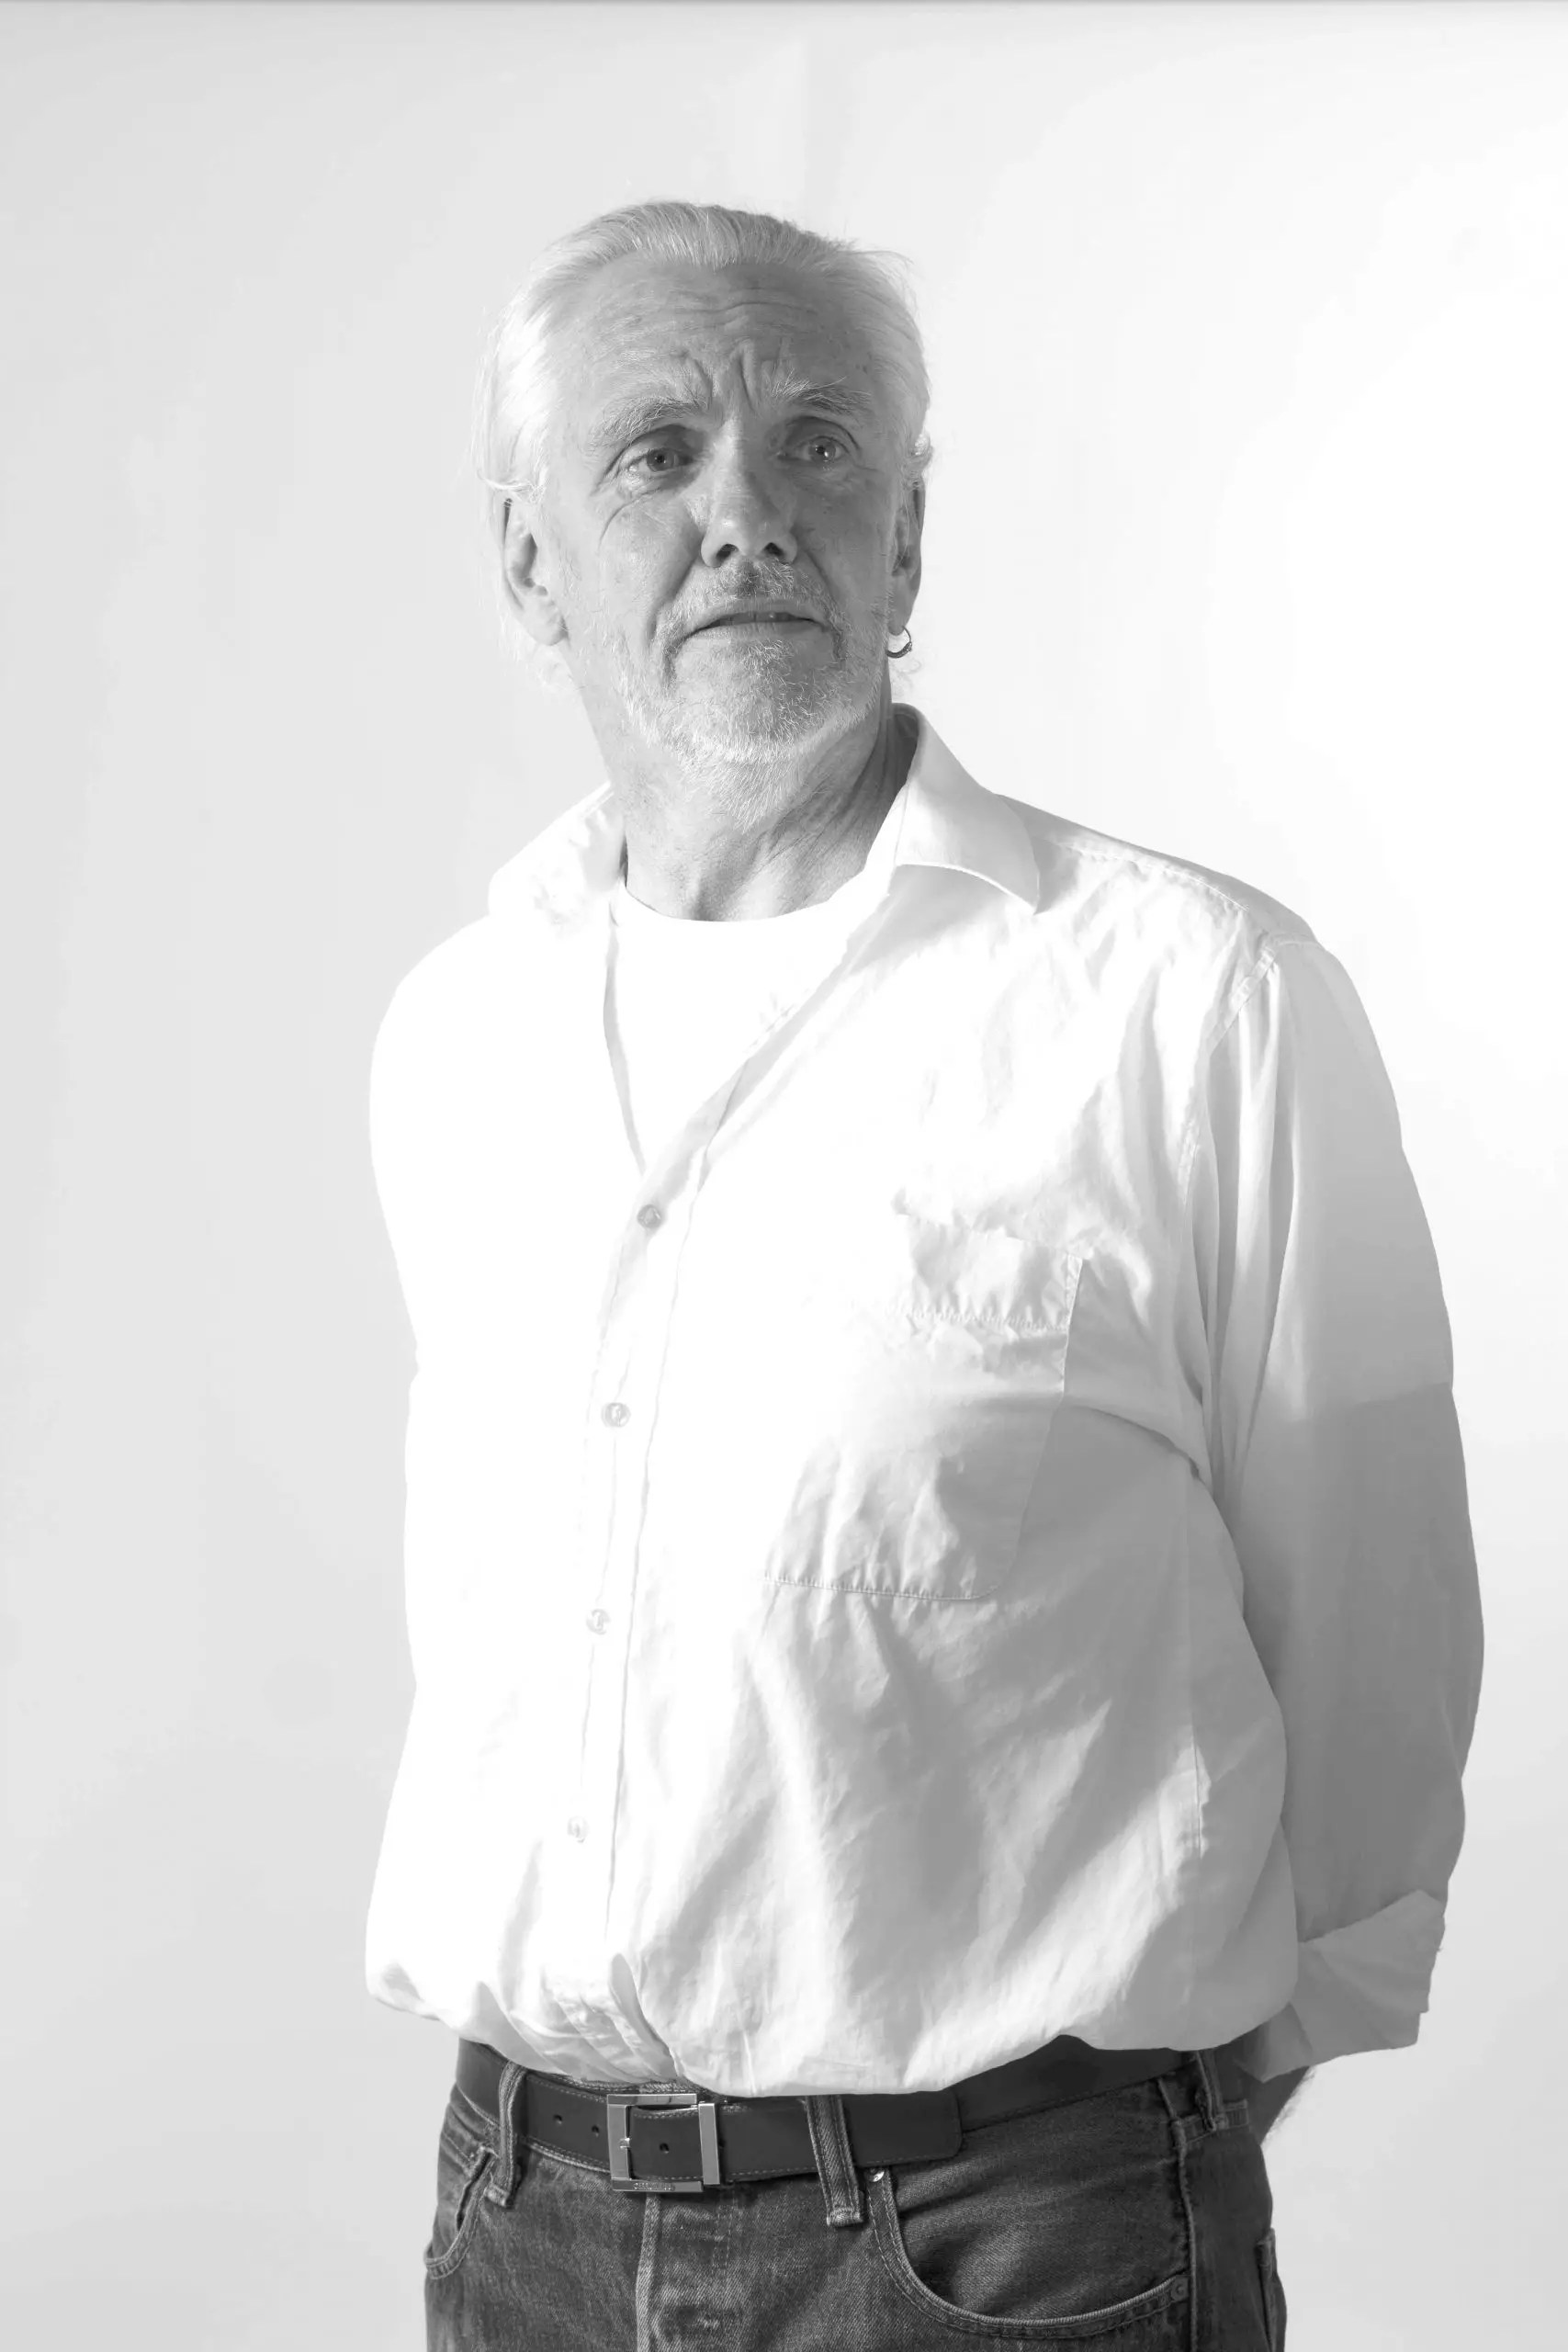 Svend Hangaard – Head of design in the acoustic company Intelligent Space